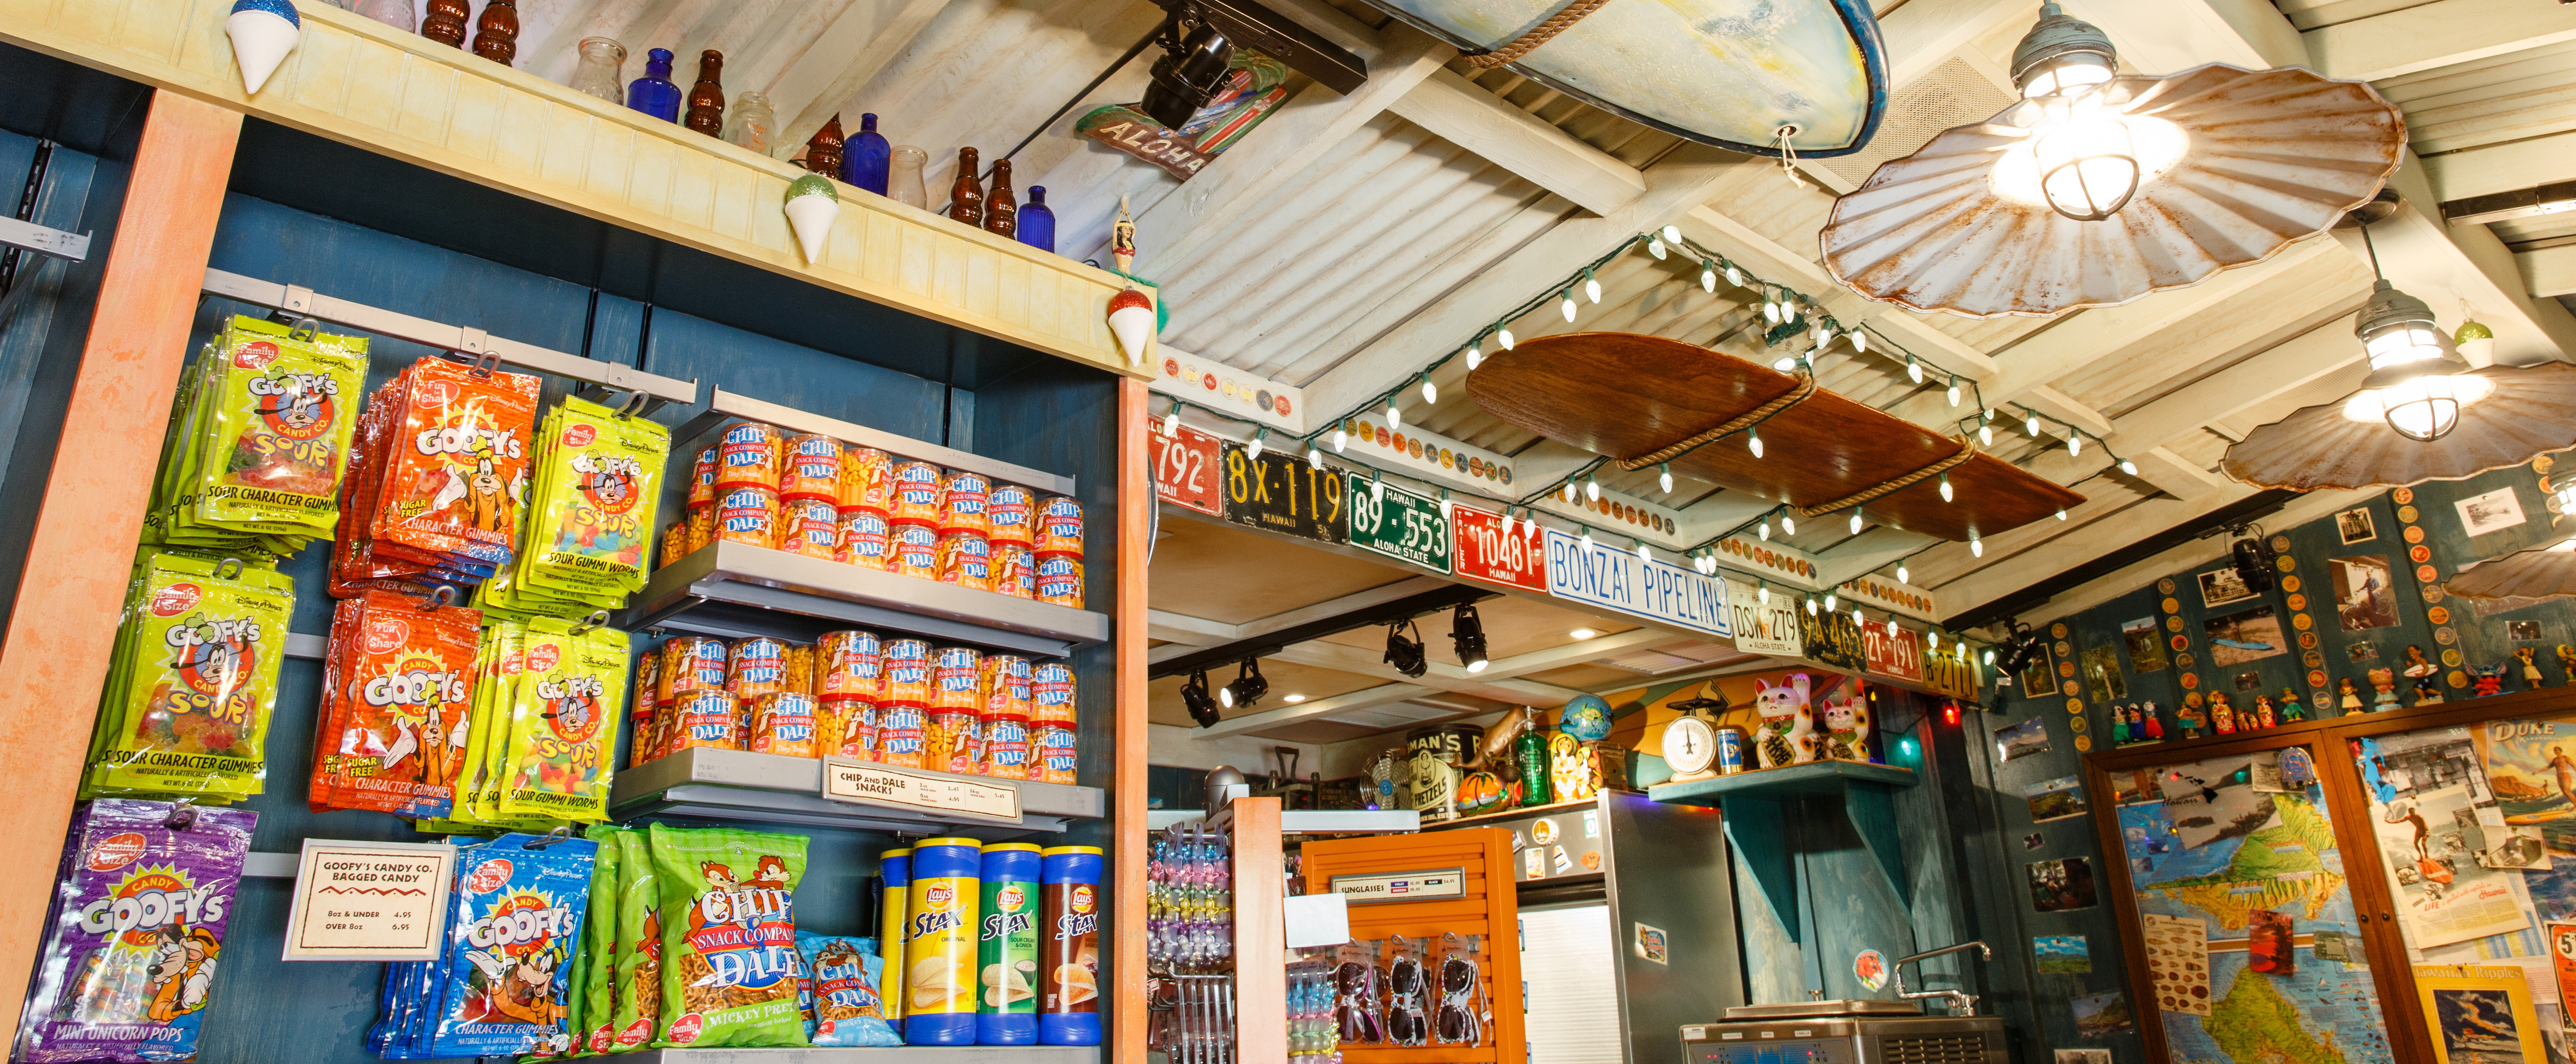 A wall display of candy, nuts, pretzels and chips at Lava Shack, with Hawaiian bric-a-brac lining the walls